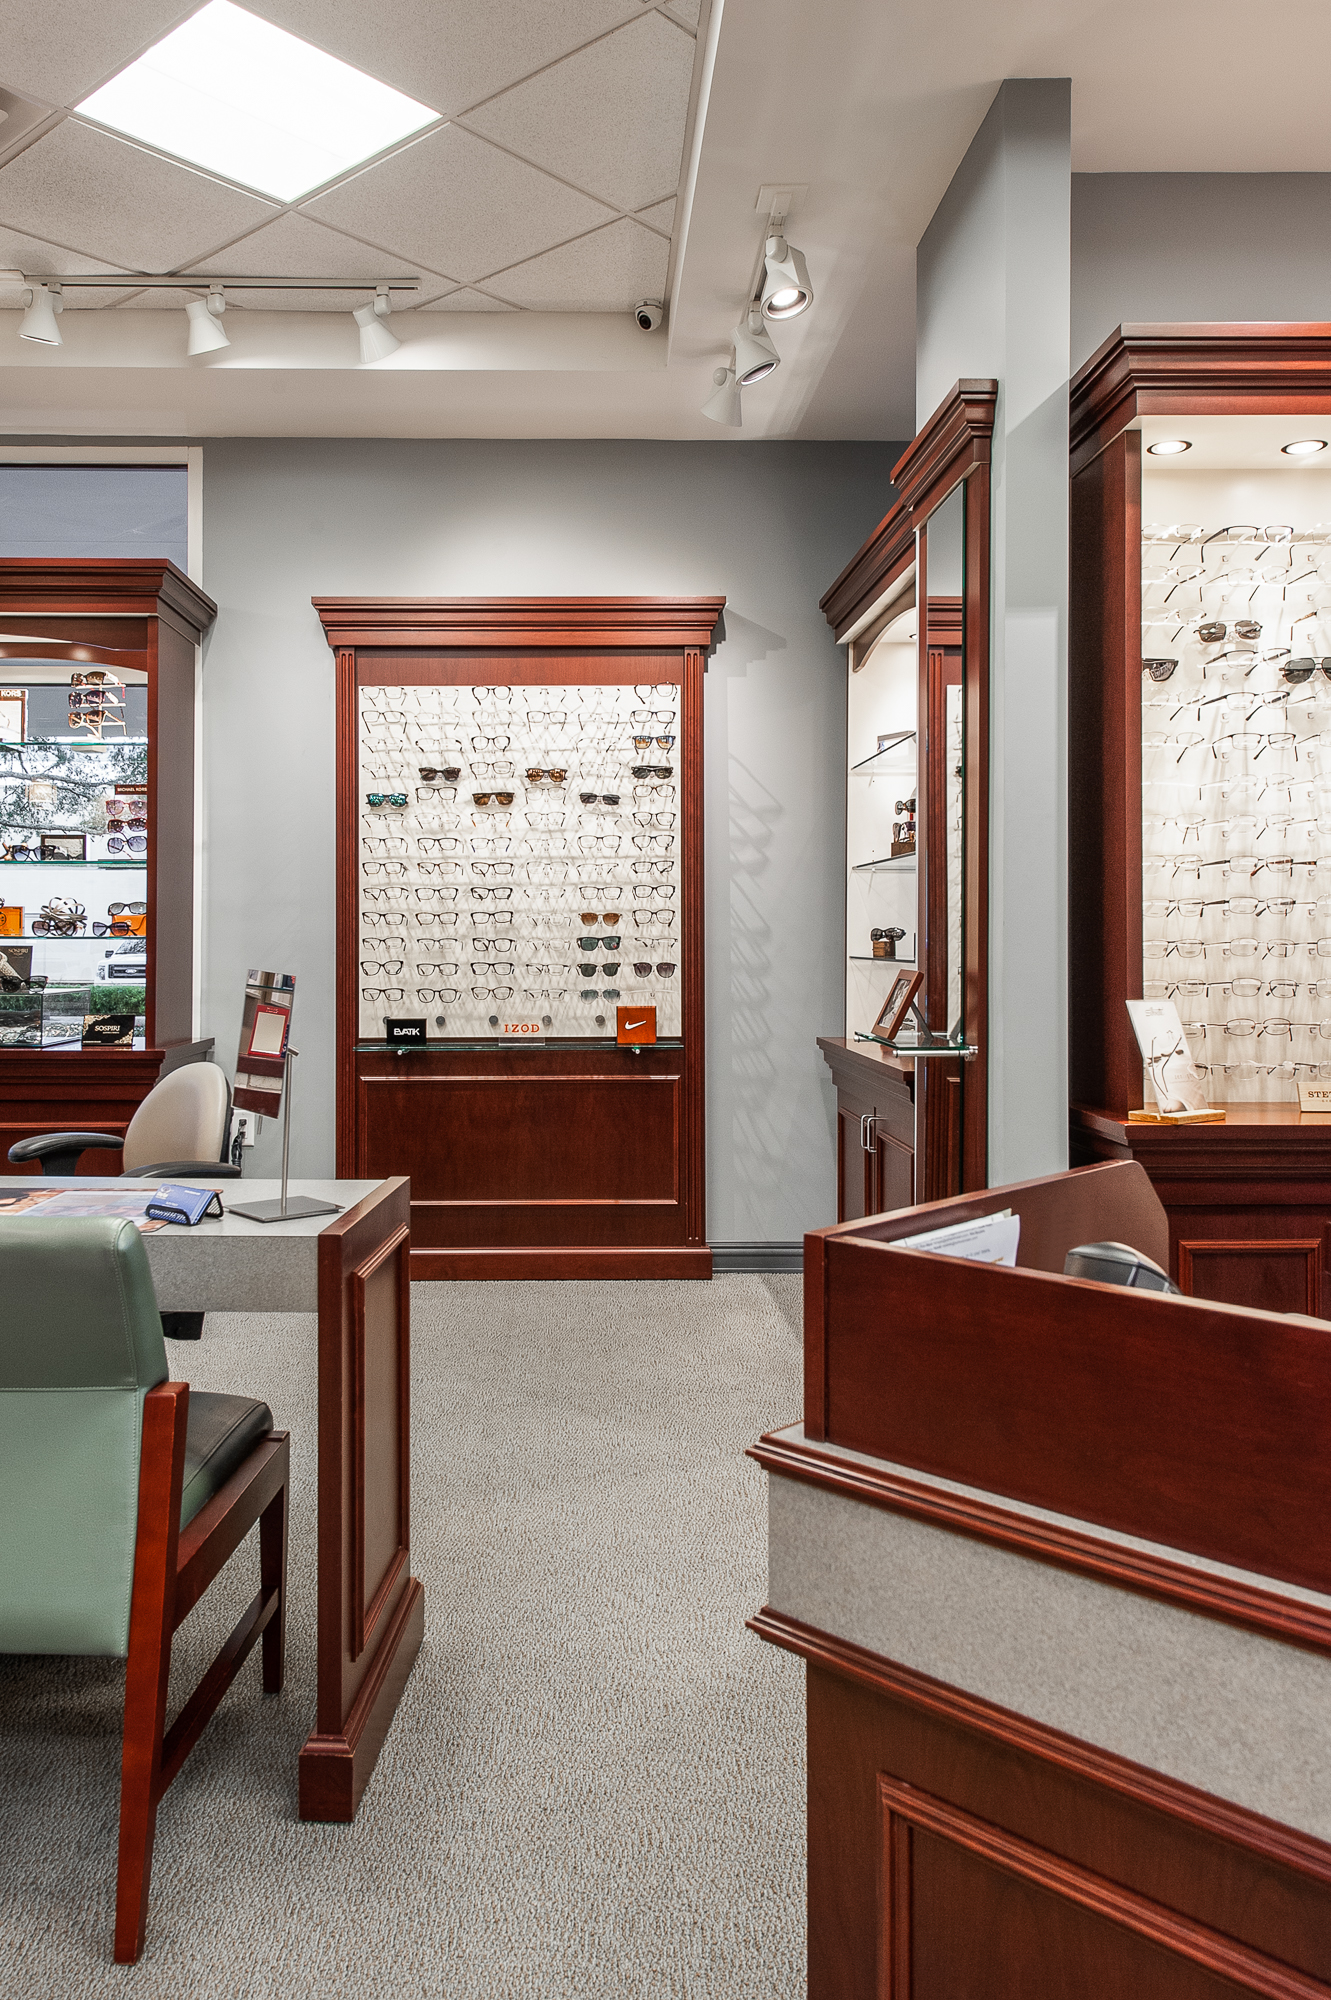 Micamy Design Studio_Interior Design_Clay Eye_Mandarin_Opthamology_Commercial_Office_Medical_Eye Care_Renovation_Crossville_Interiors_Artwork_Coastal_Crossville_Eykon2.jpg